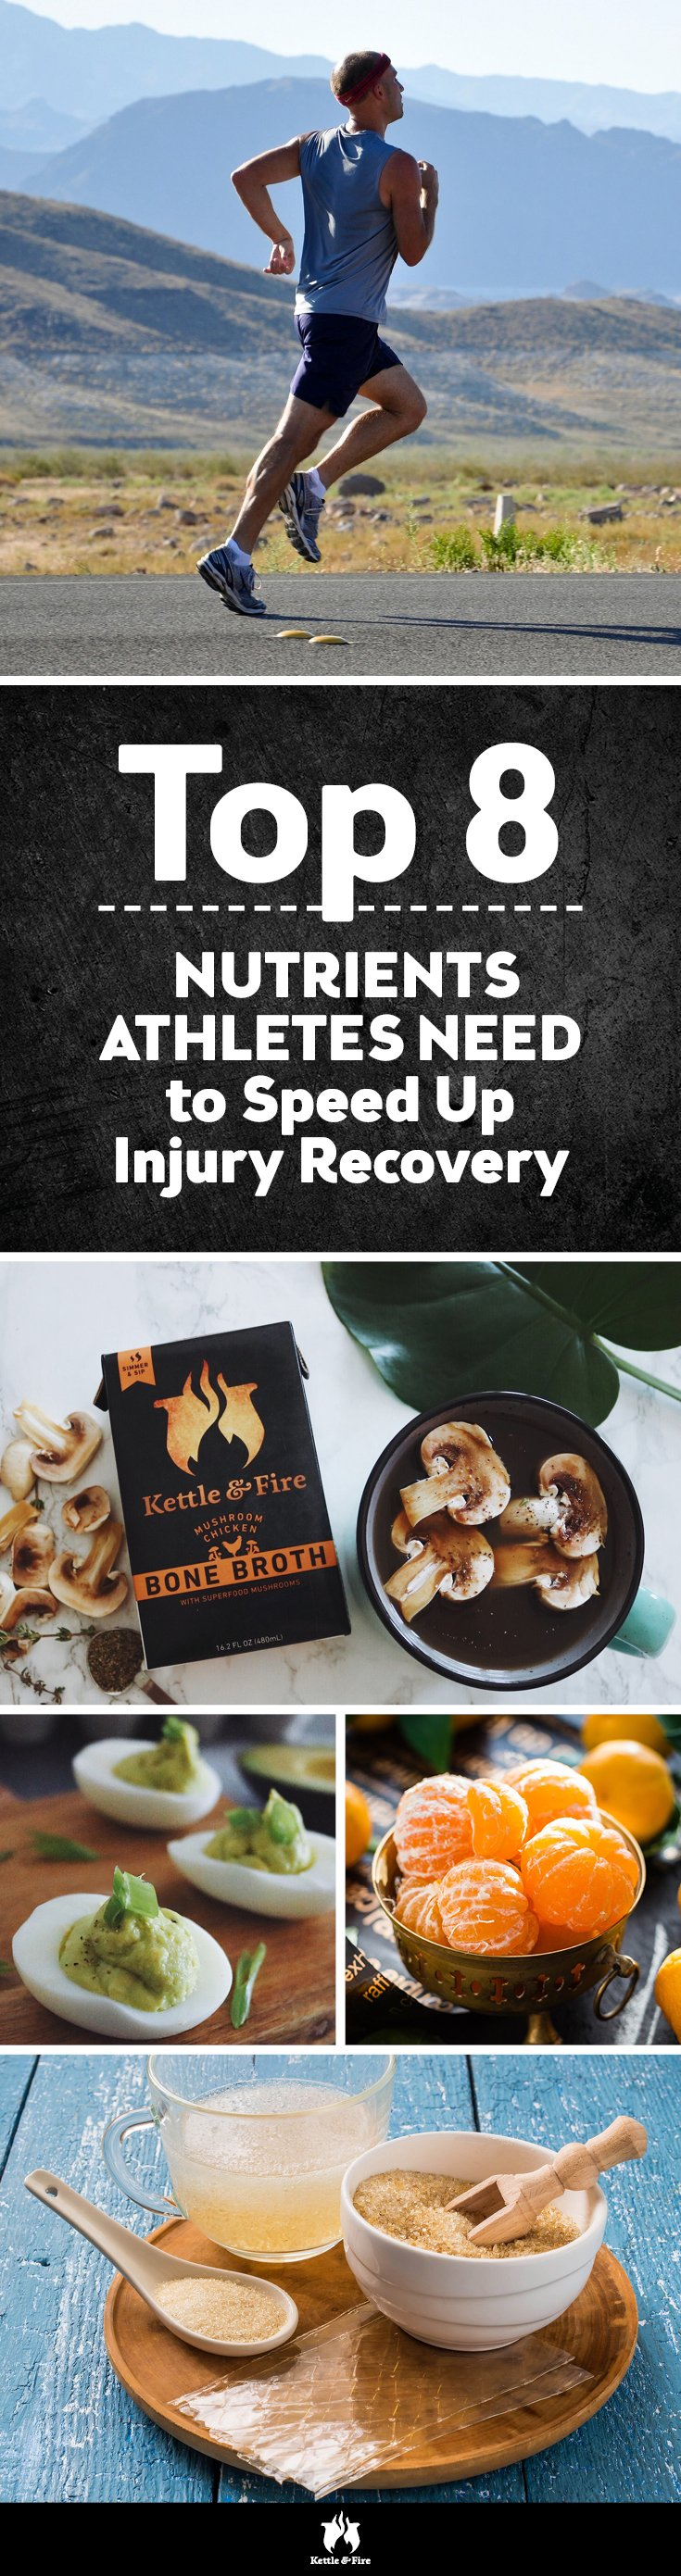 Athletes, here's how you can speed up injury recovery time and prevent future injuries from happening by having specific nutrients in your diet.